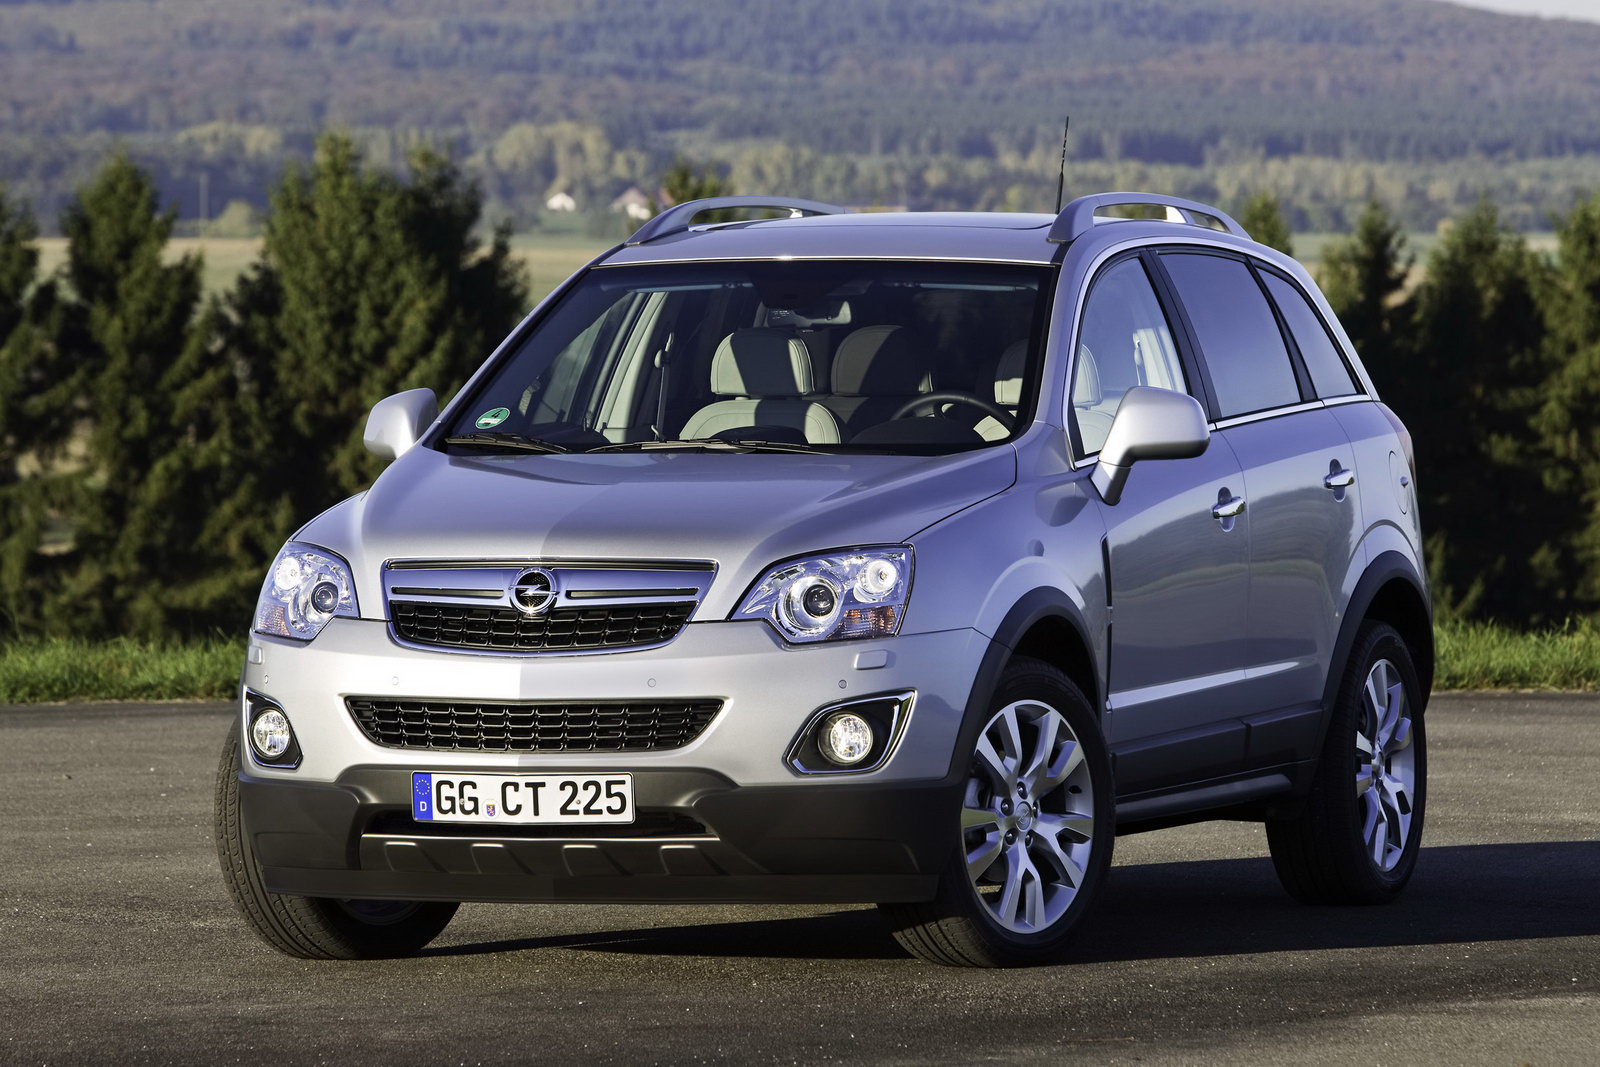 2011 Opel Vauxhall Antara 2 2011 Opel Antara   Photos, Features, Price